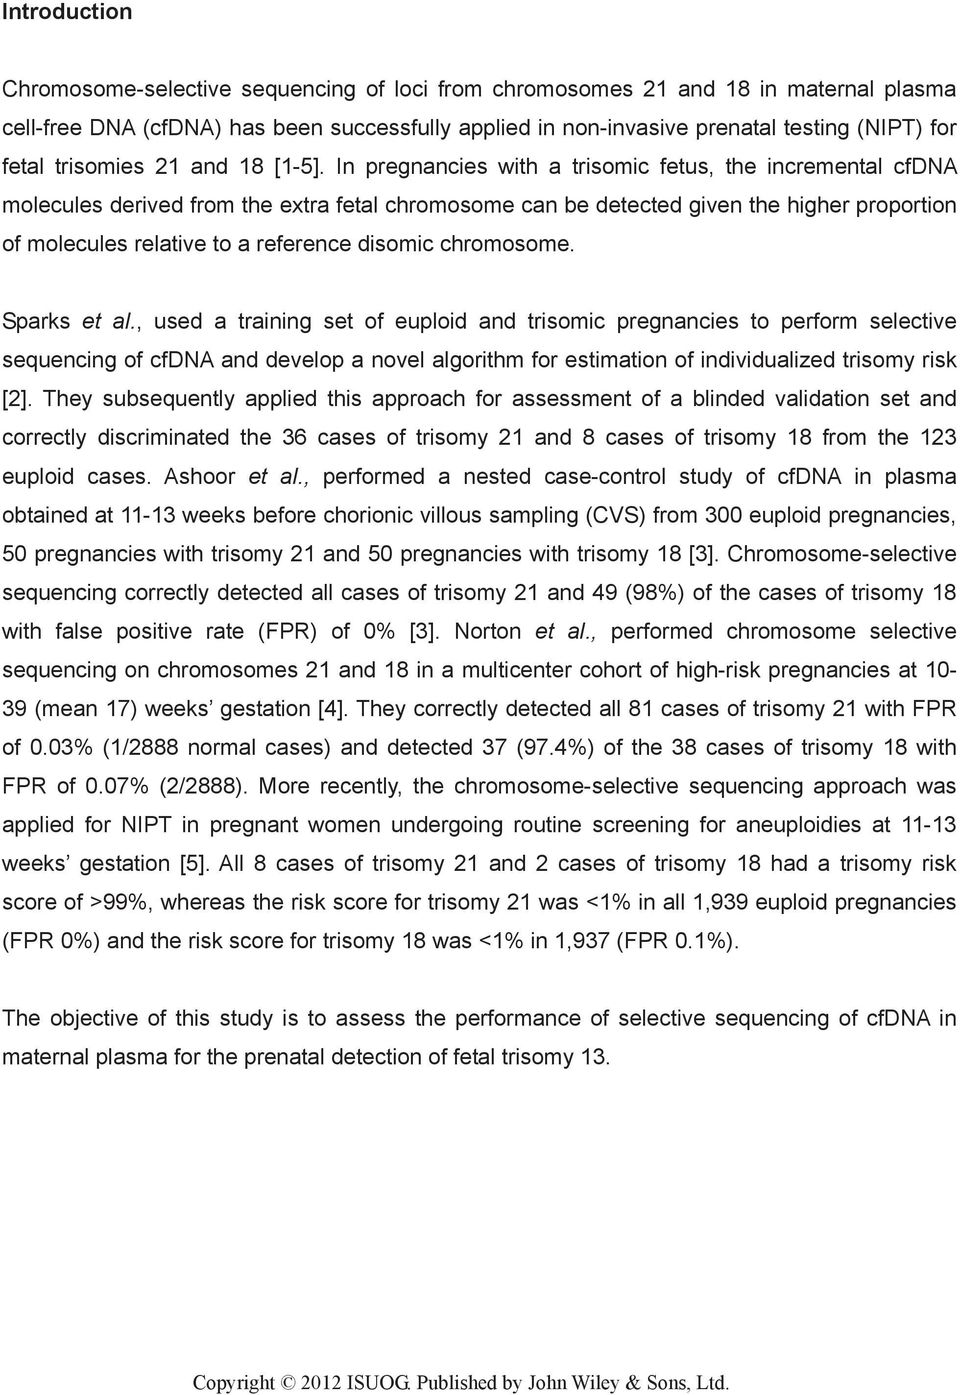 In pregnancies with a trisomic fetus, the incremental cfdna molecules derived from the extra fetal chromosome can be detected given the higher proportion of molecules relative to a reference disomic